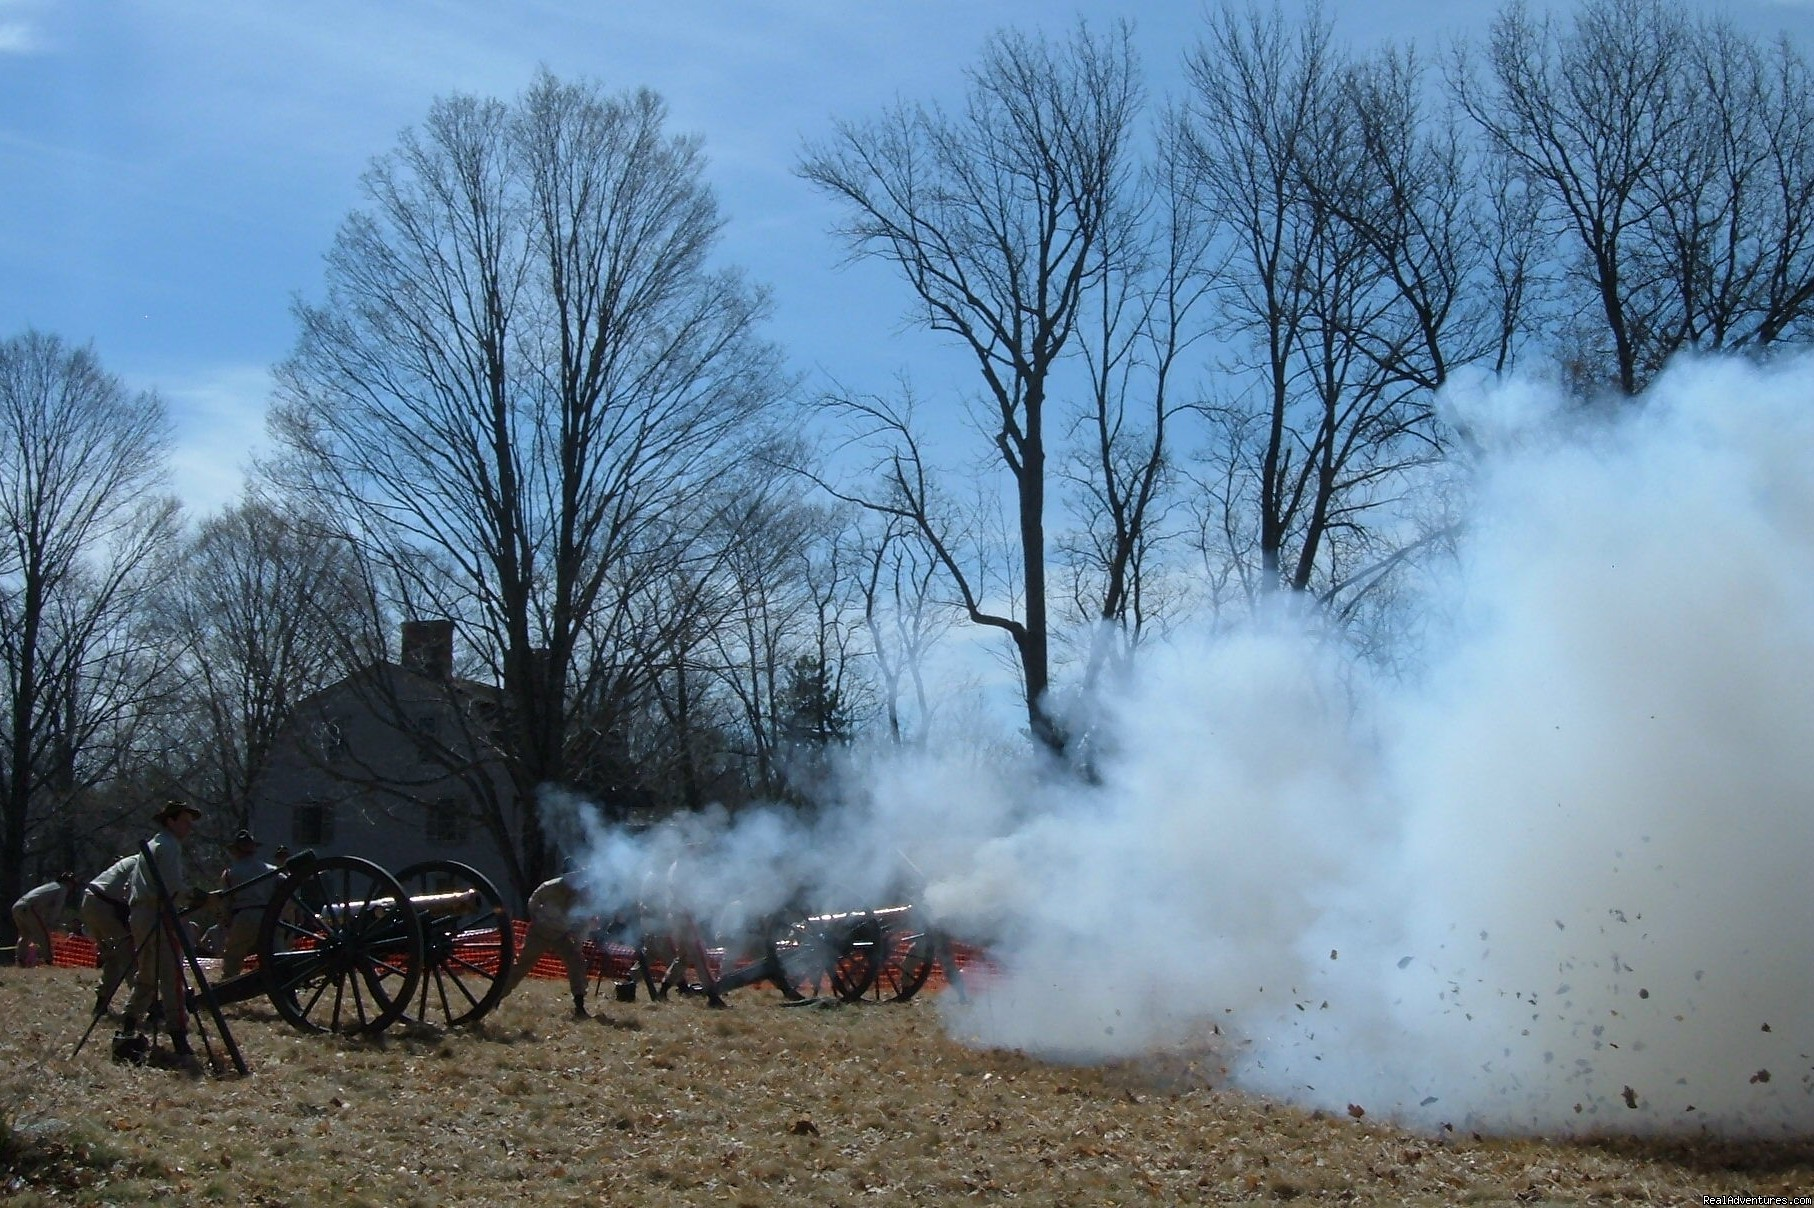 Cannon Battery on Patriot's Day